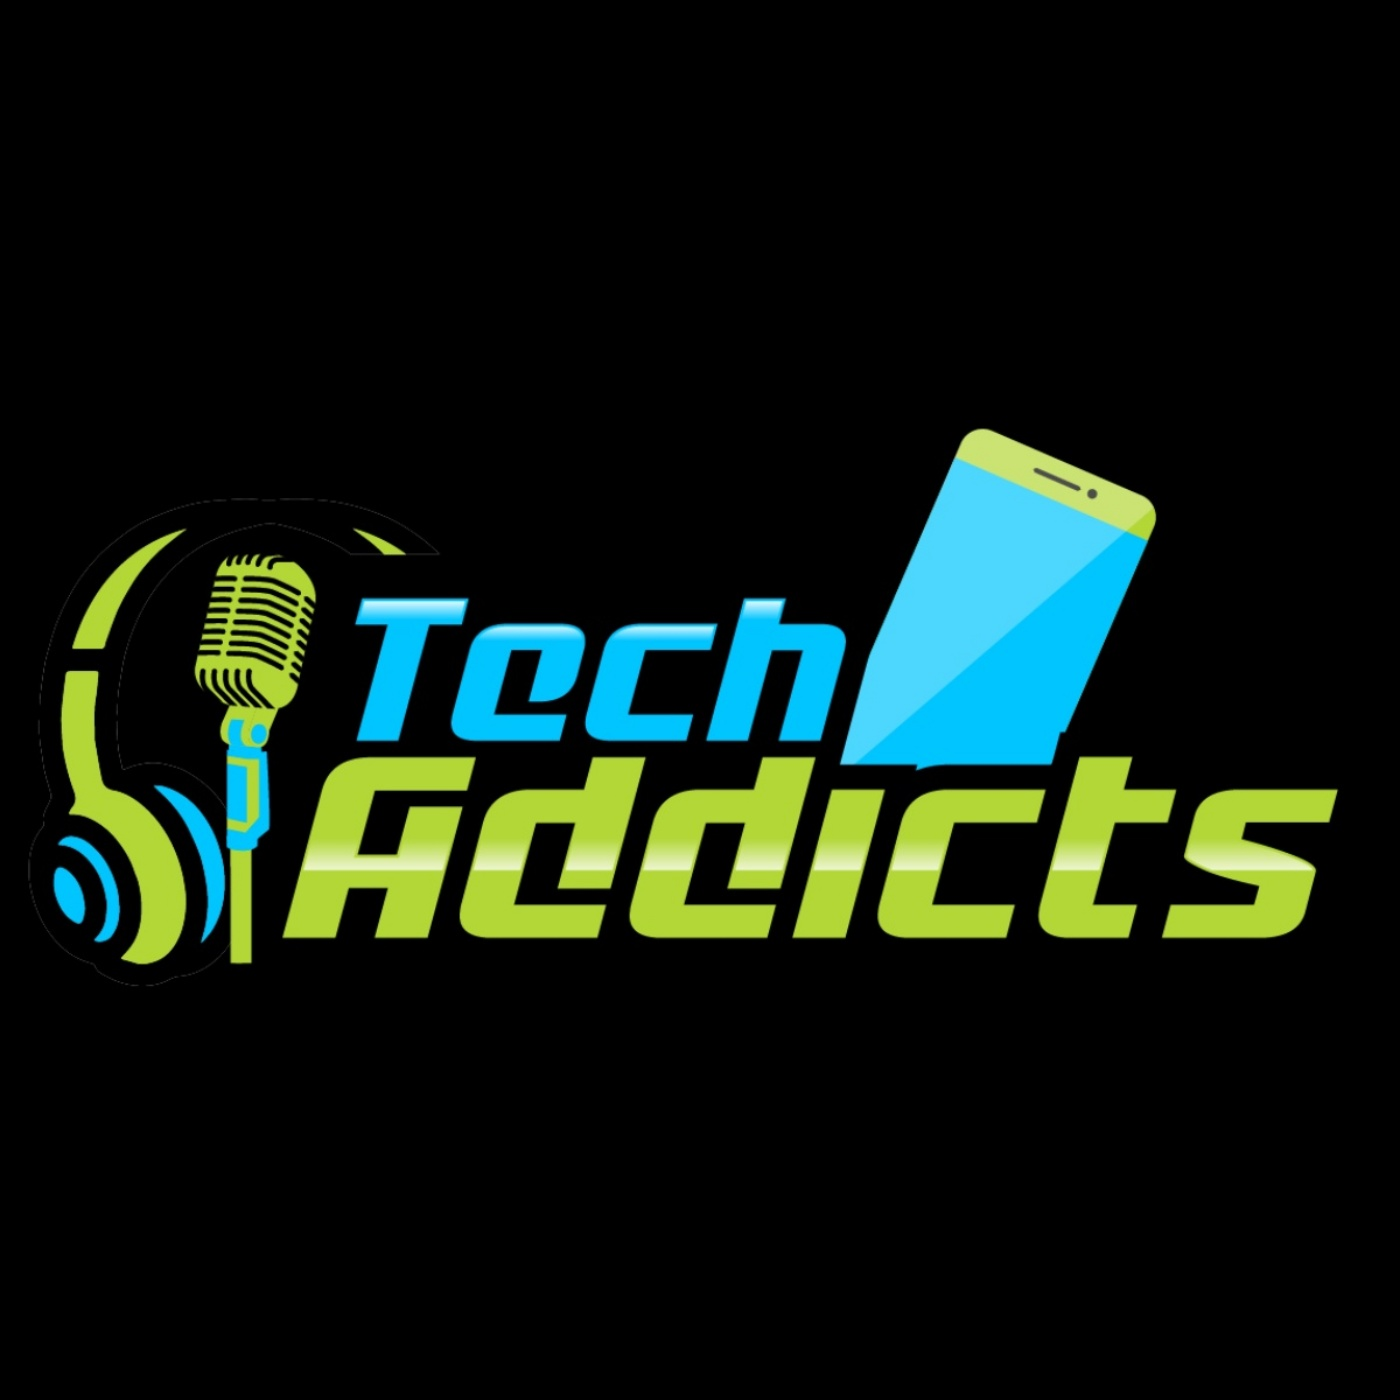 Tech Addicts Podcast - 3rd January 2021 - How was 2020 for you darling?